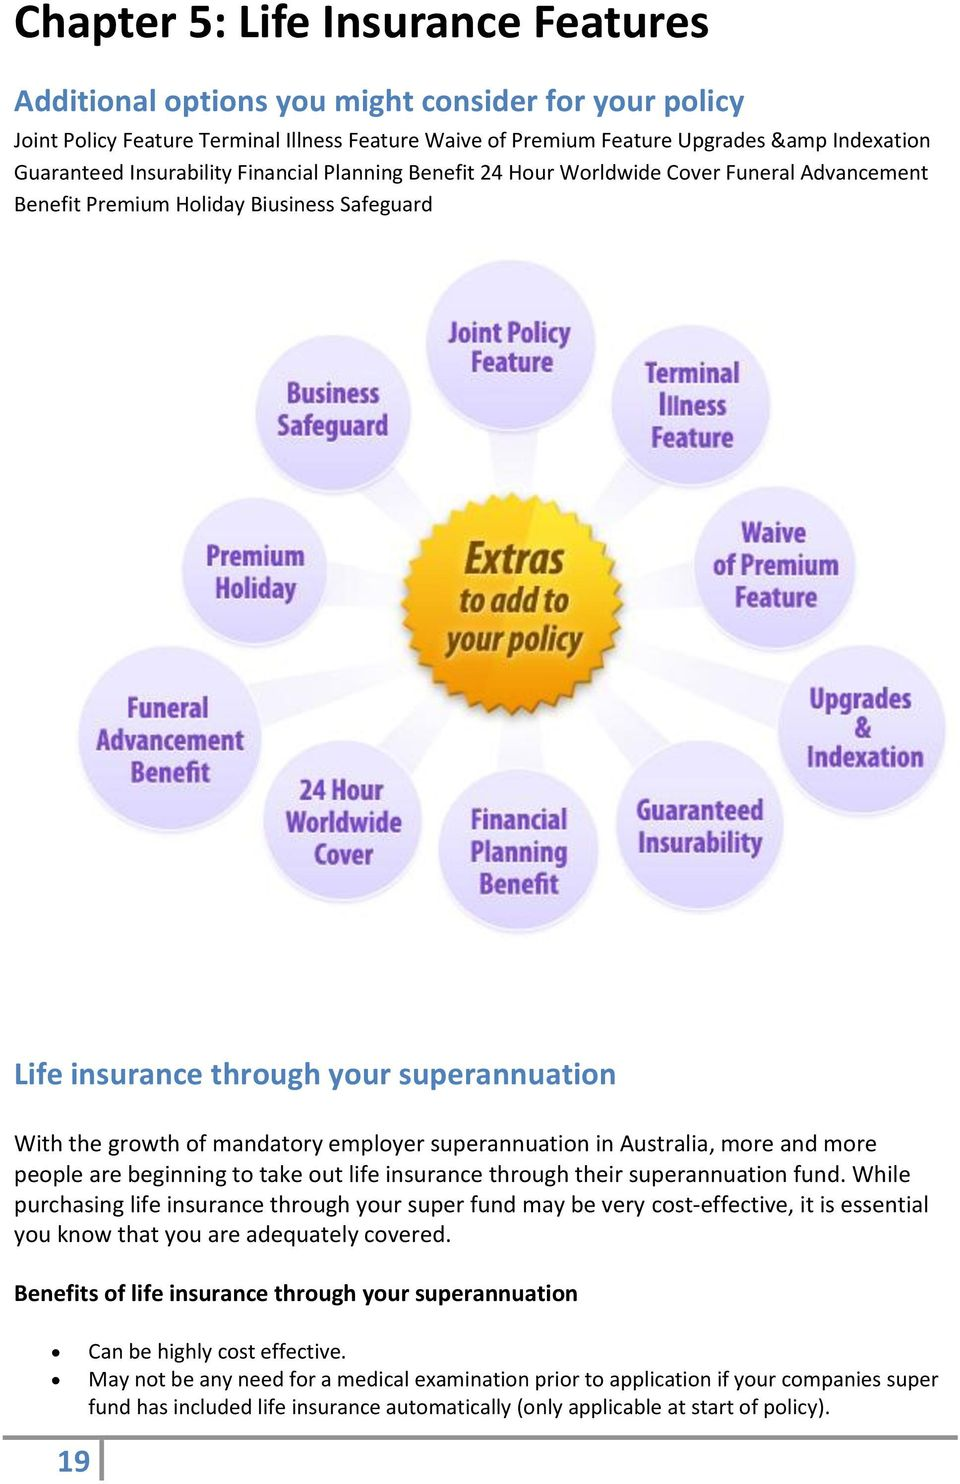 employer superannuation in Australia, more and more people are beginning to take out life insurance through their superannuation fund.